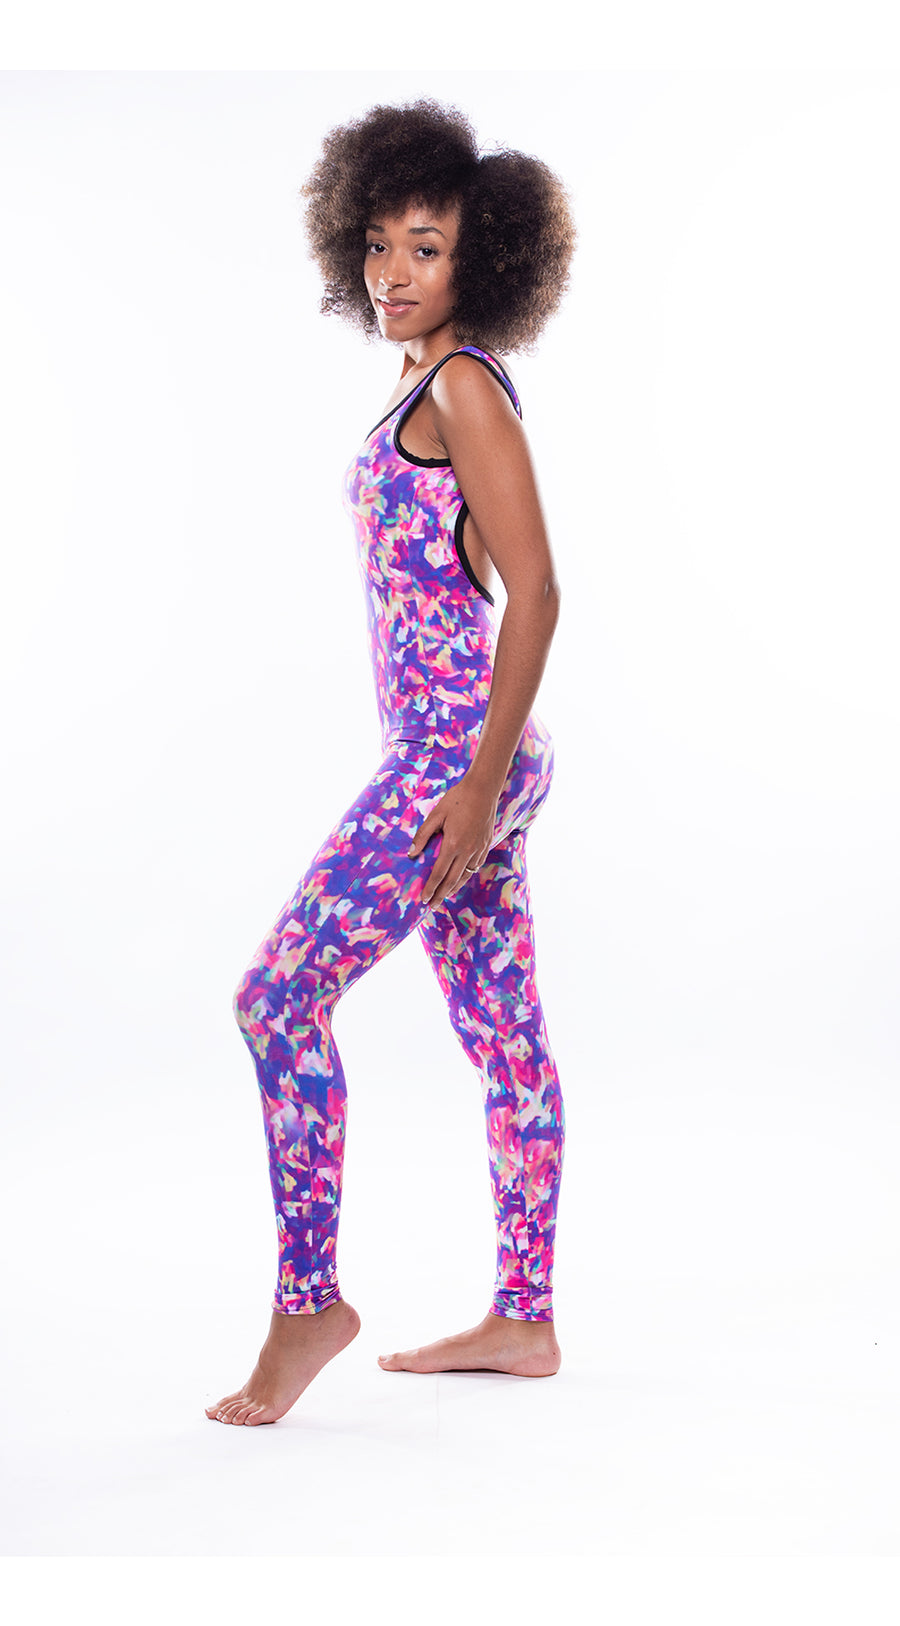 Booma Bodysuit - Living Color